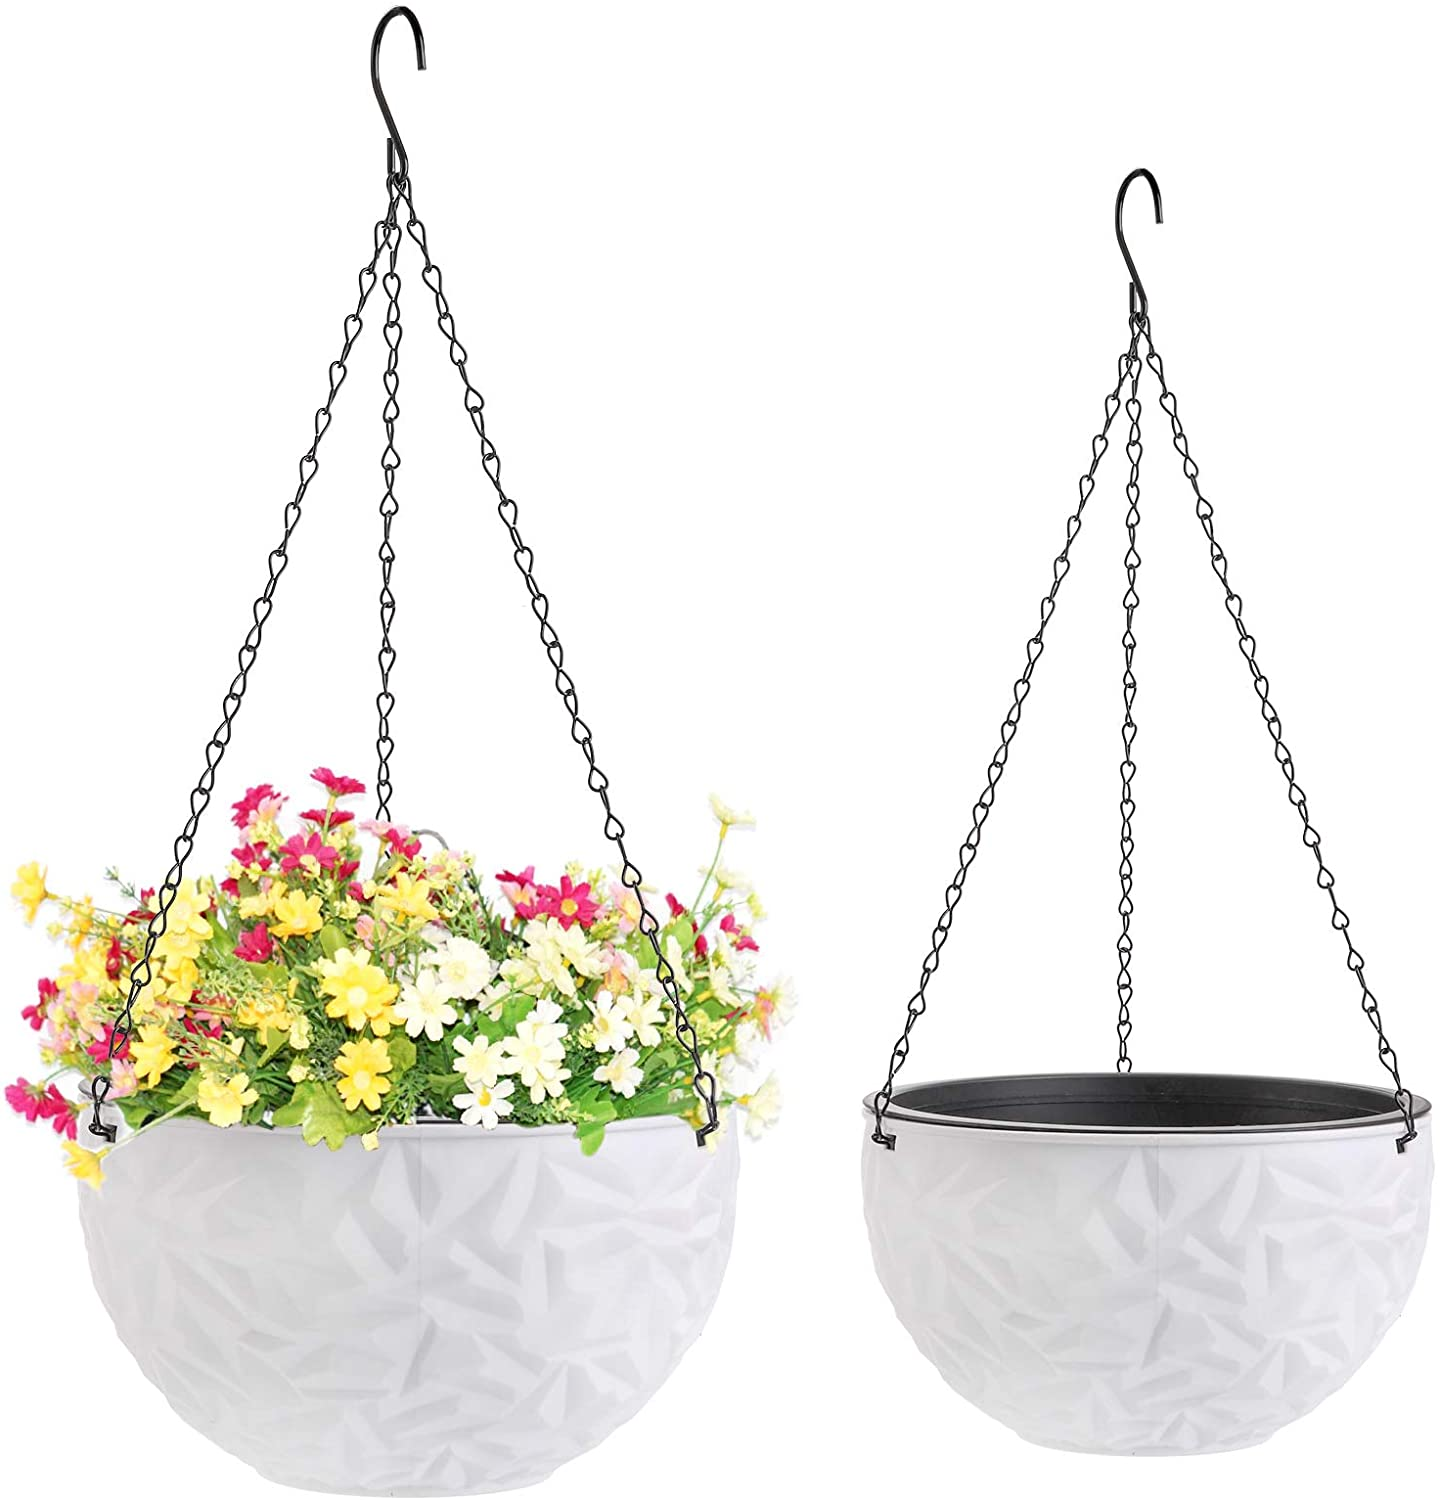 Foraineam Max 71% OFF Now on sale 2 Sizes Dual-pots Self-Wateri Hanging Planters Design